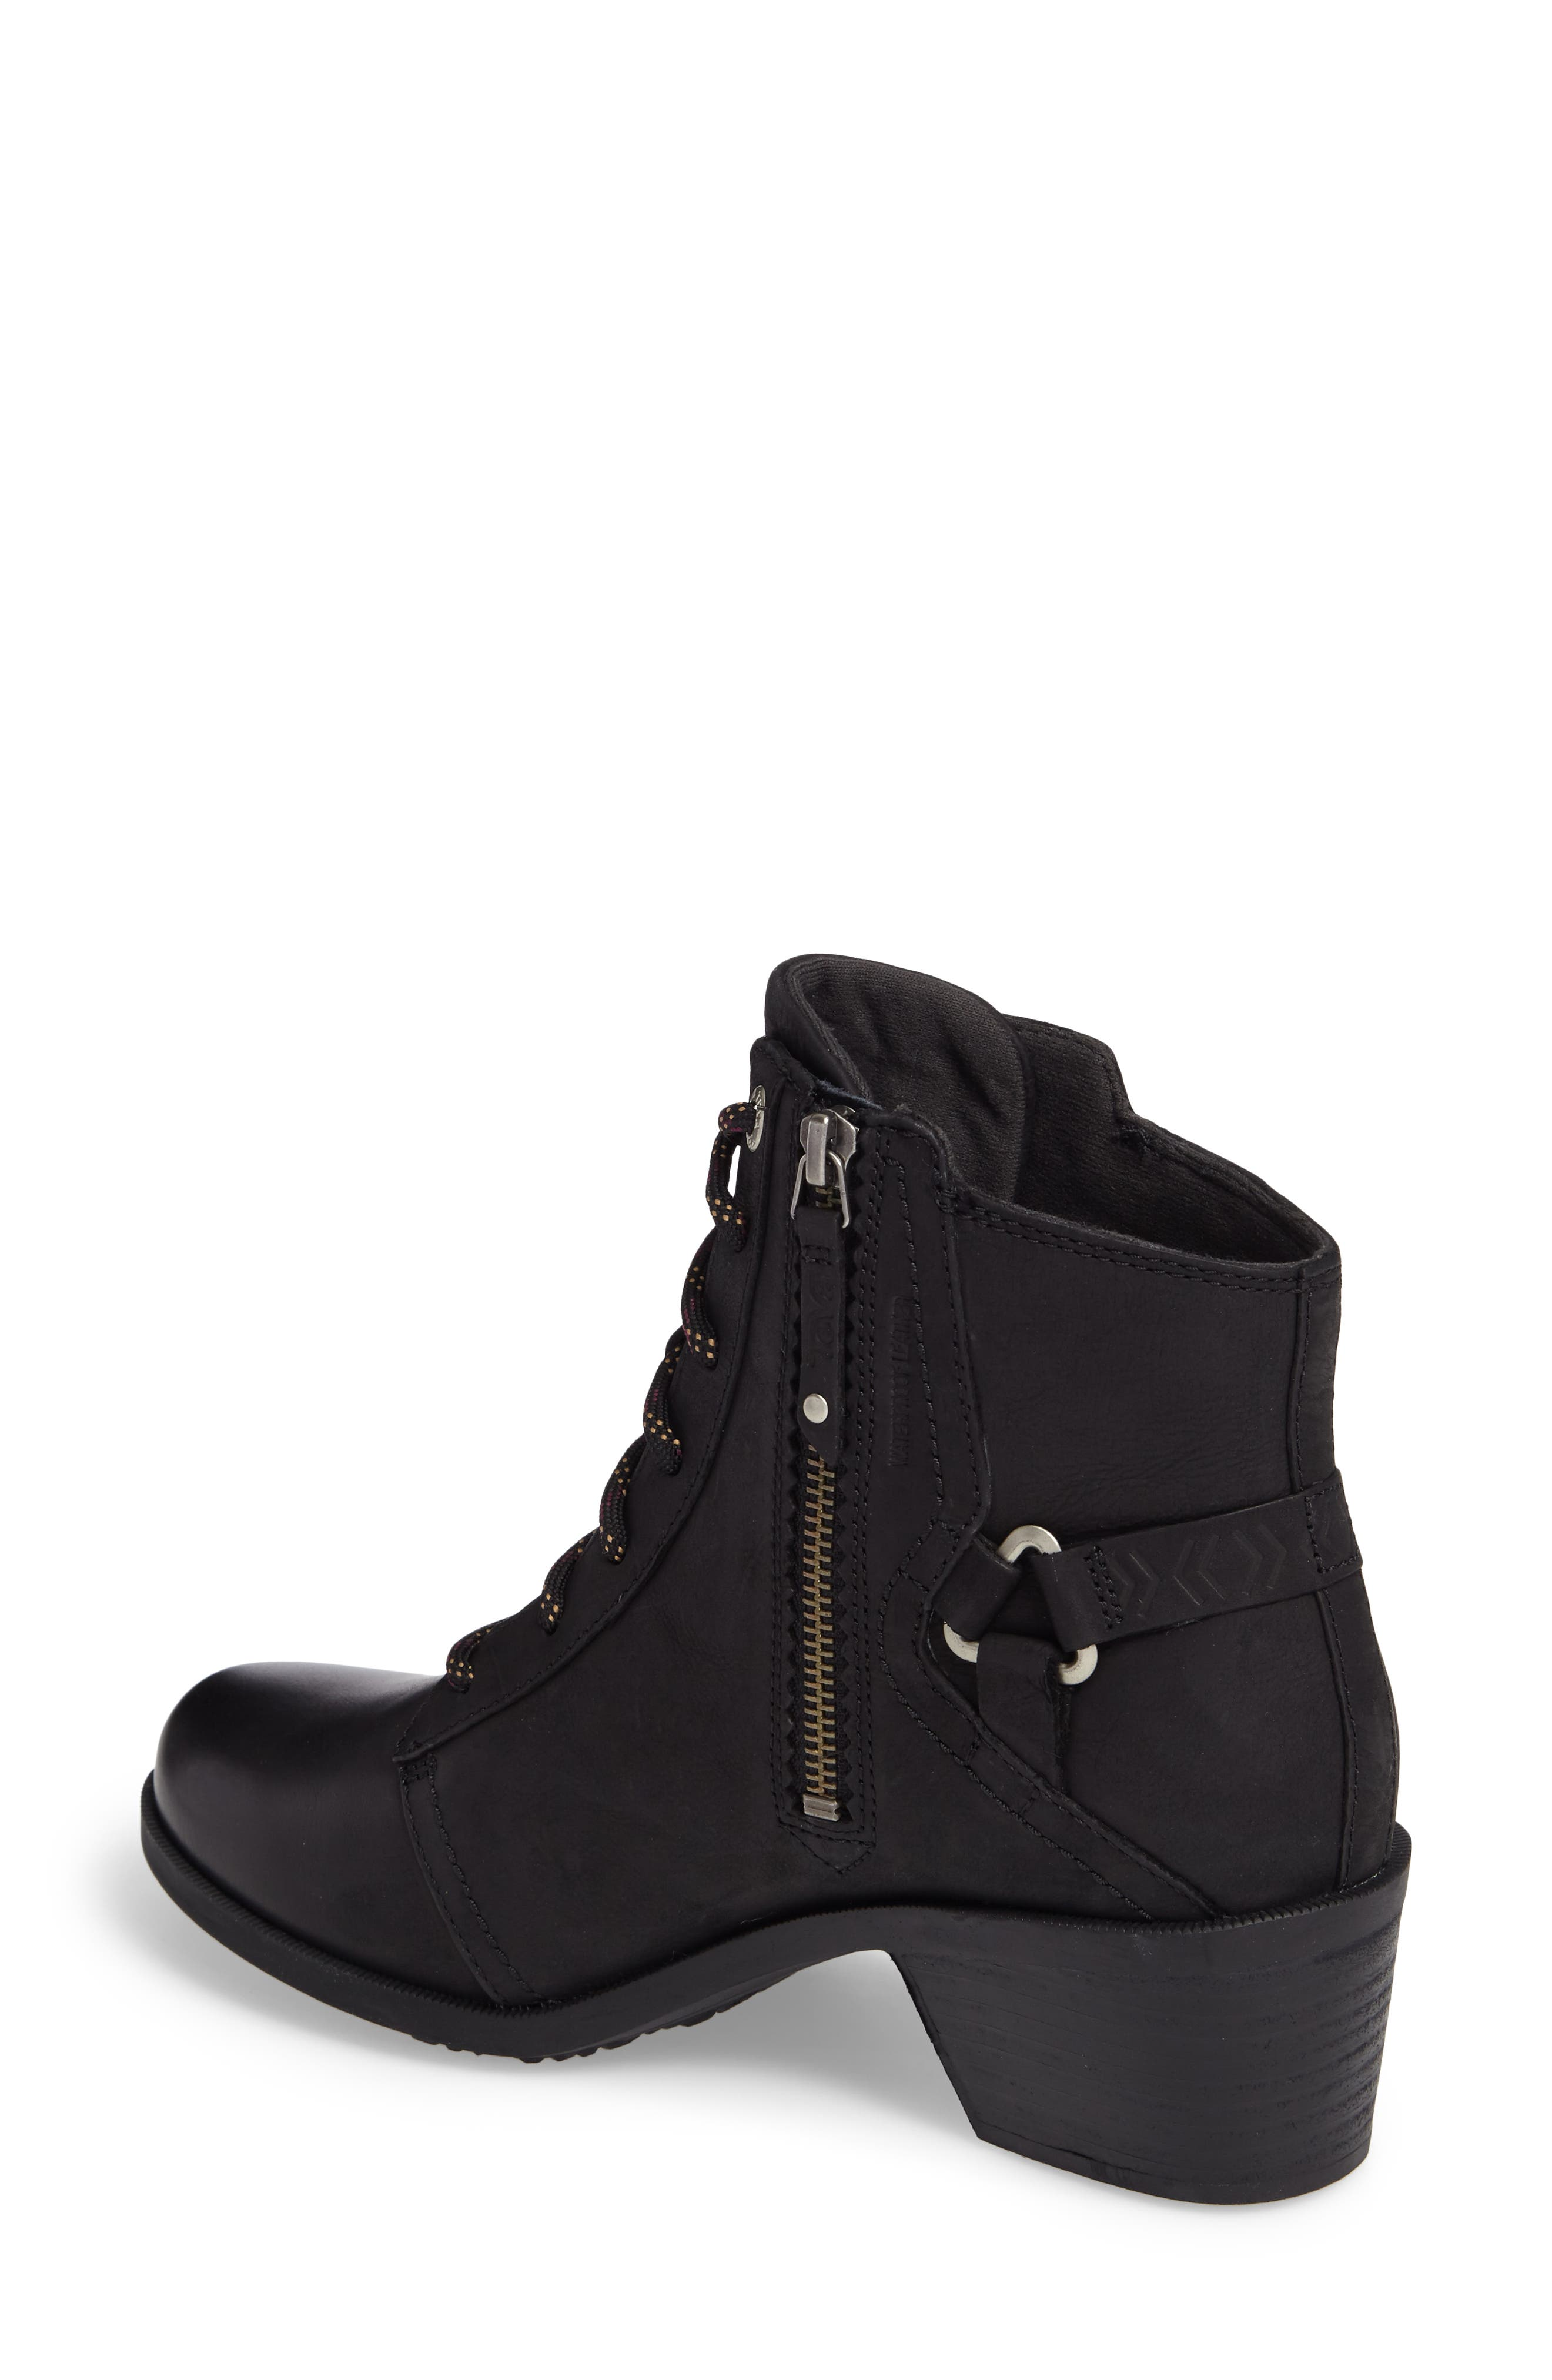 TEVA, Foxy Lace-Up Waterproof Boot, Alternate thumbnail 2, color, BLACK LEATHER